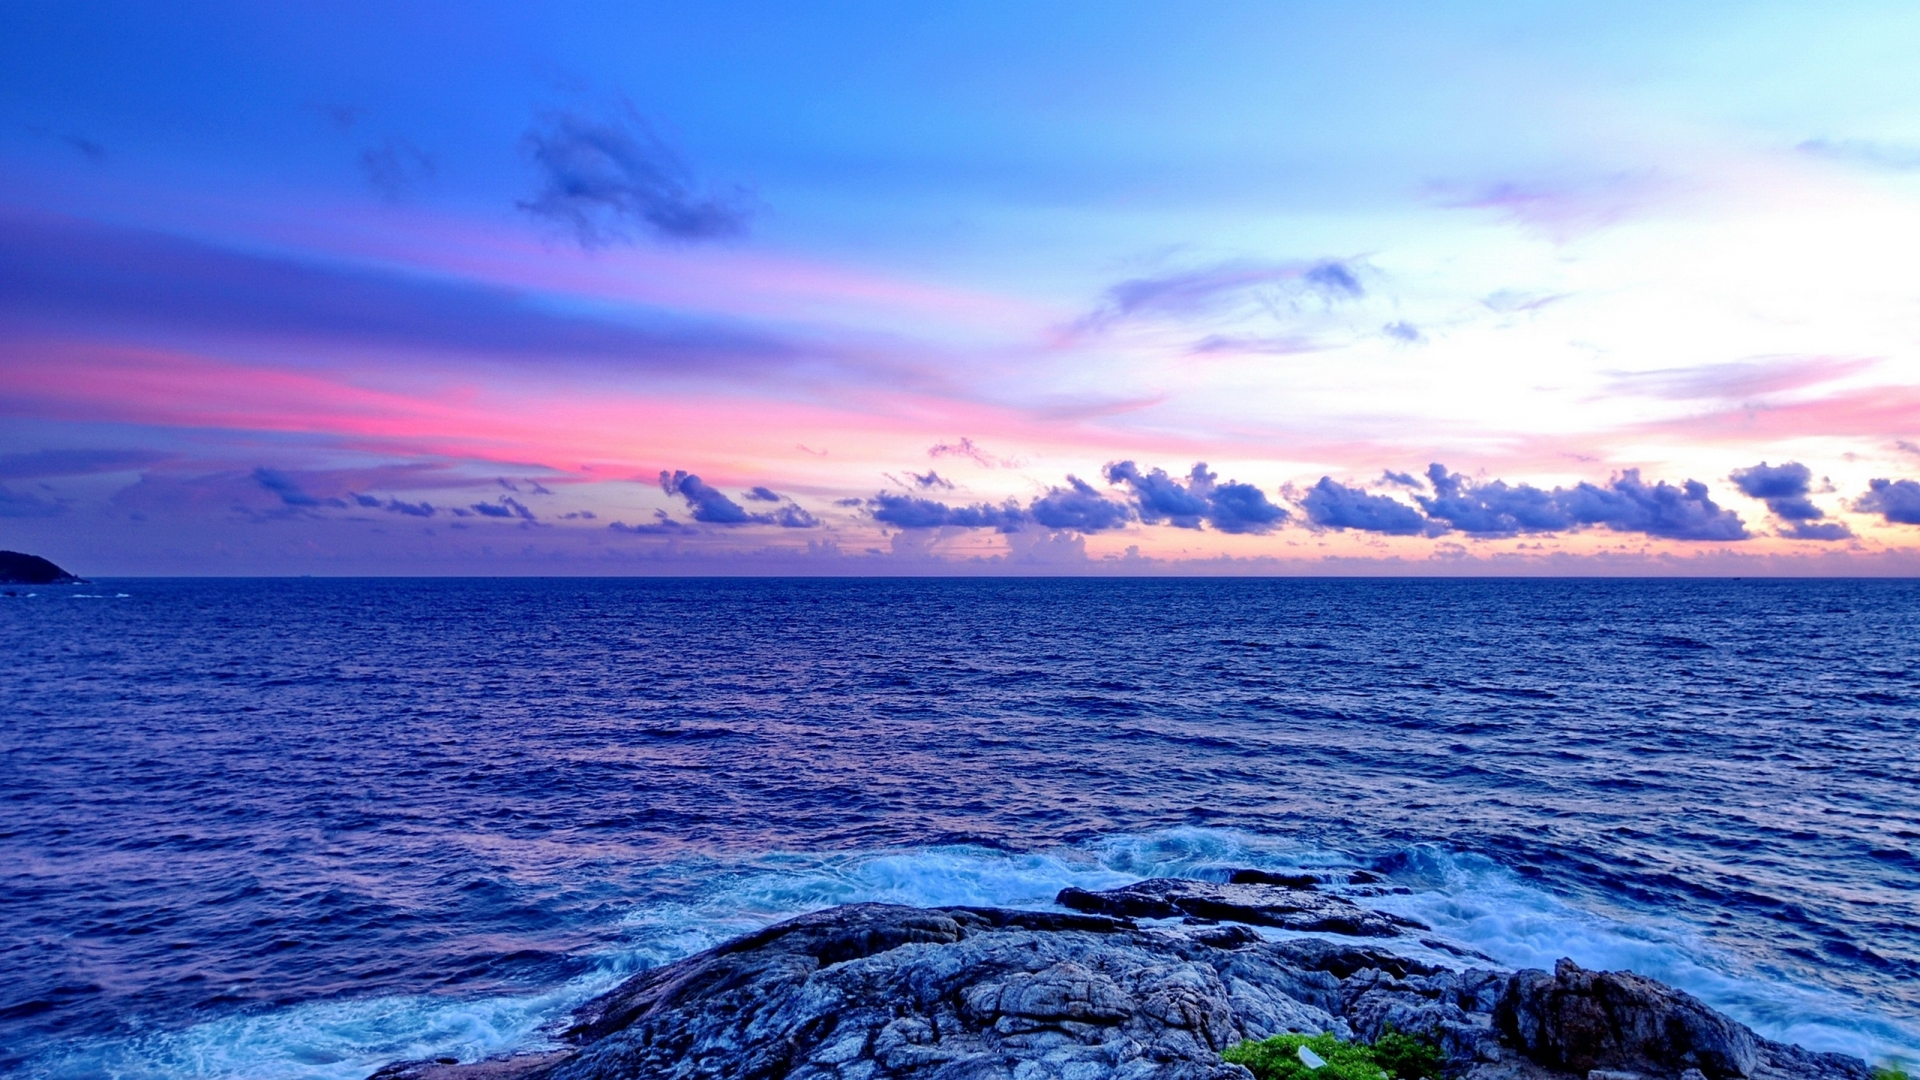 HQ Seascape Wallpapers | File 1519.1Kb